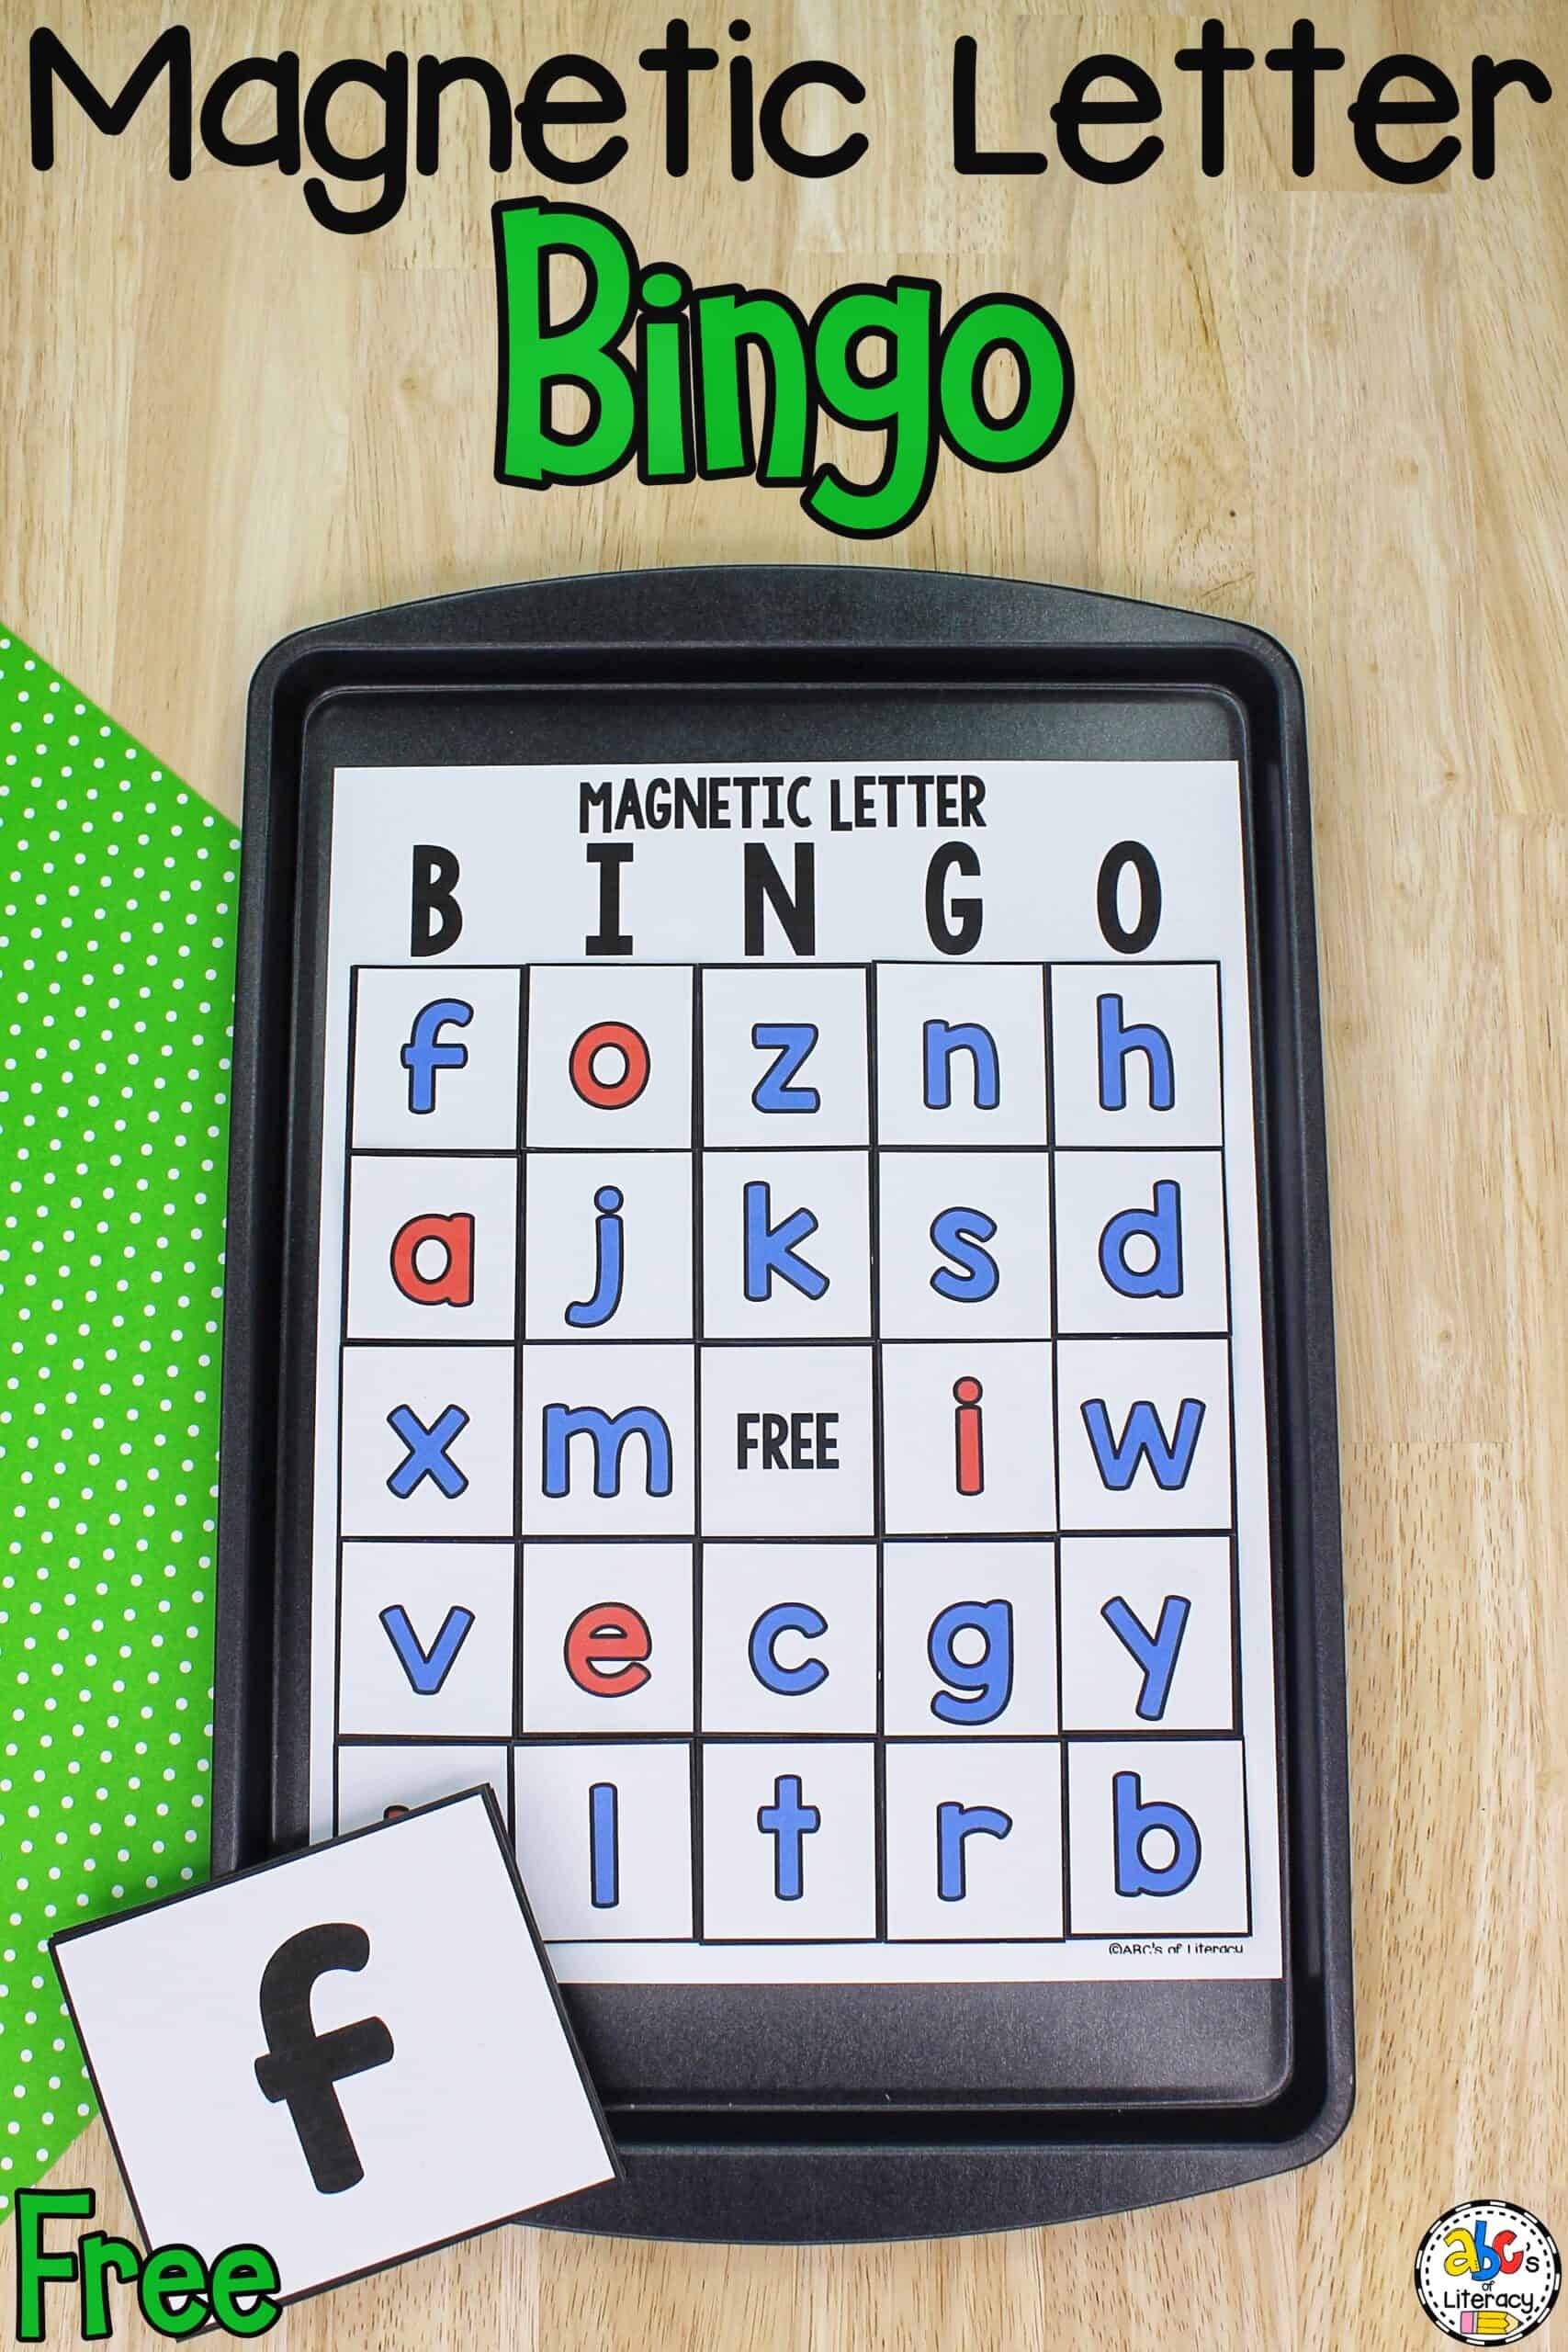 Magnetic Letter Bingo Game